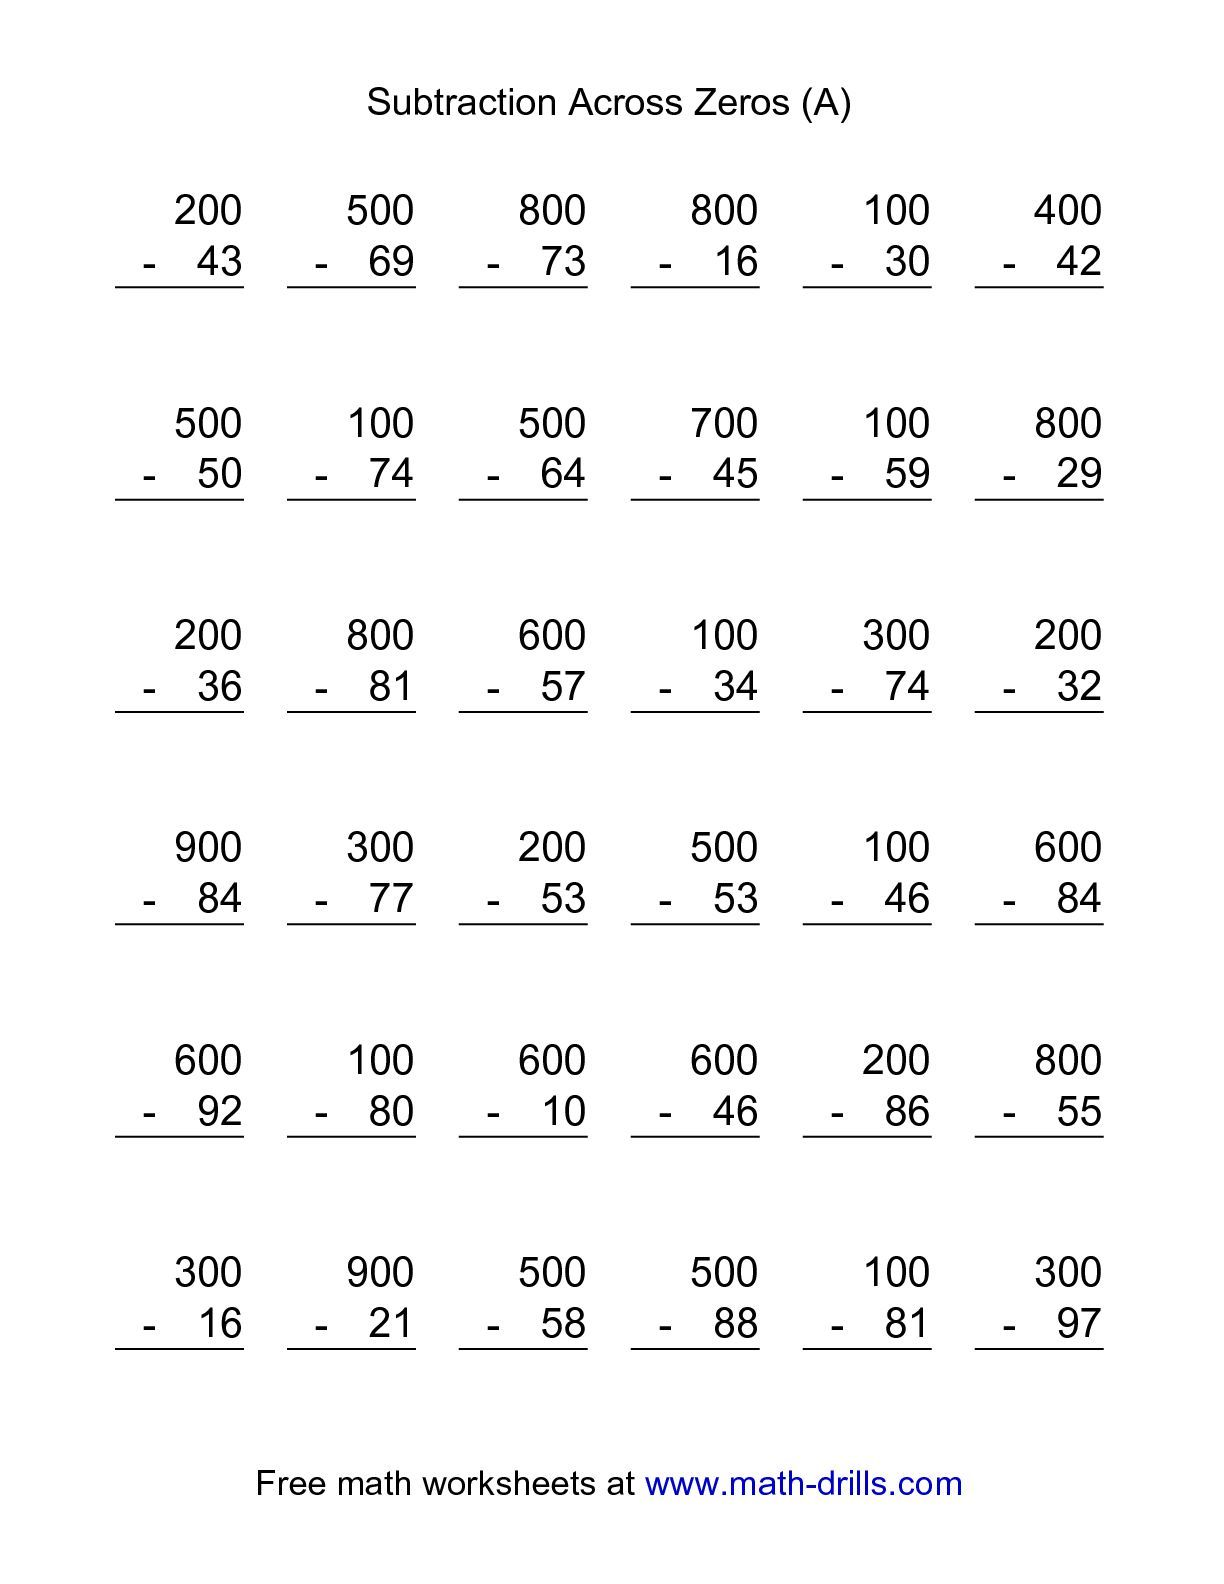 The Subtraction Across Zeros -- 36 Questions (A) math worksheet from the Subtraction  Worksheet…   Subtraction worksheets [ 1584 x 1224 Pixel ]